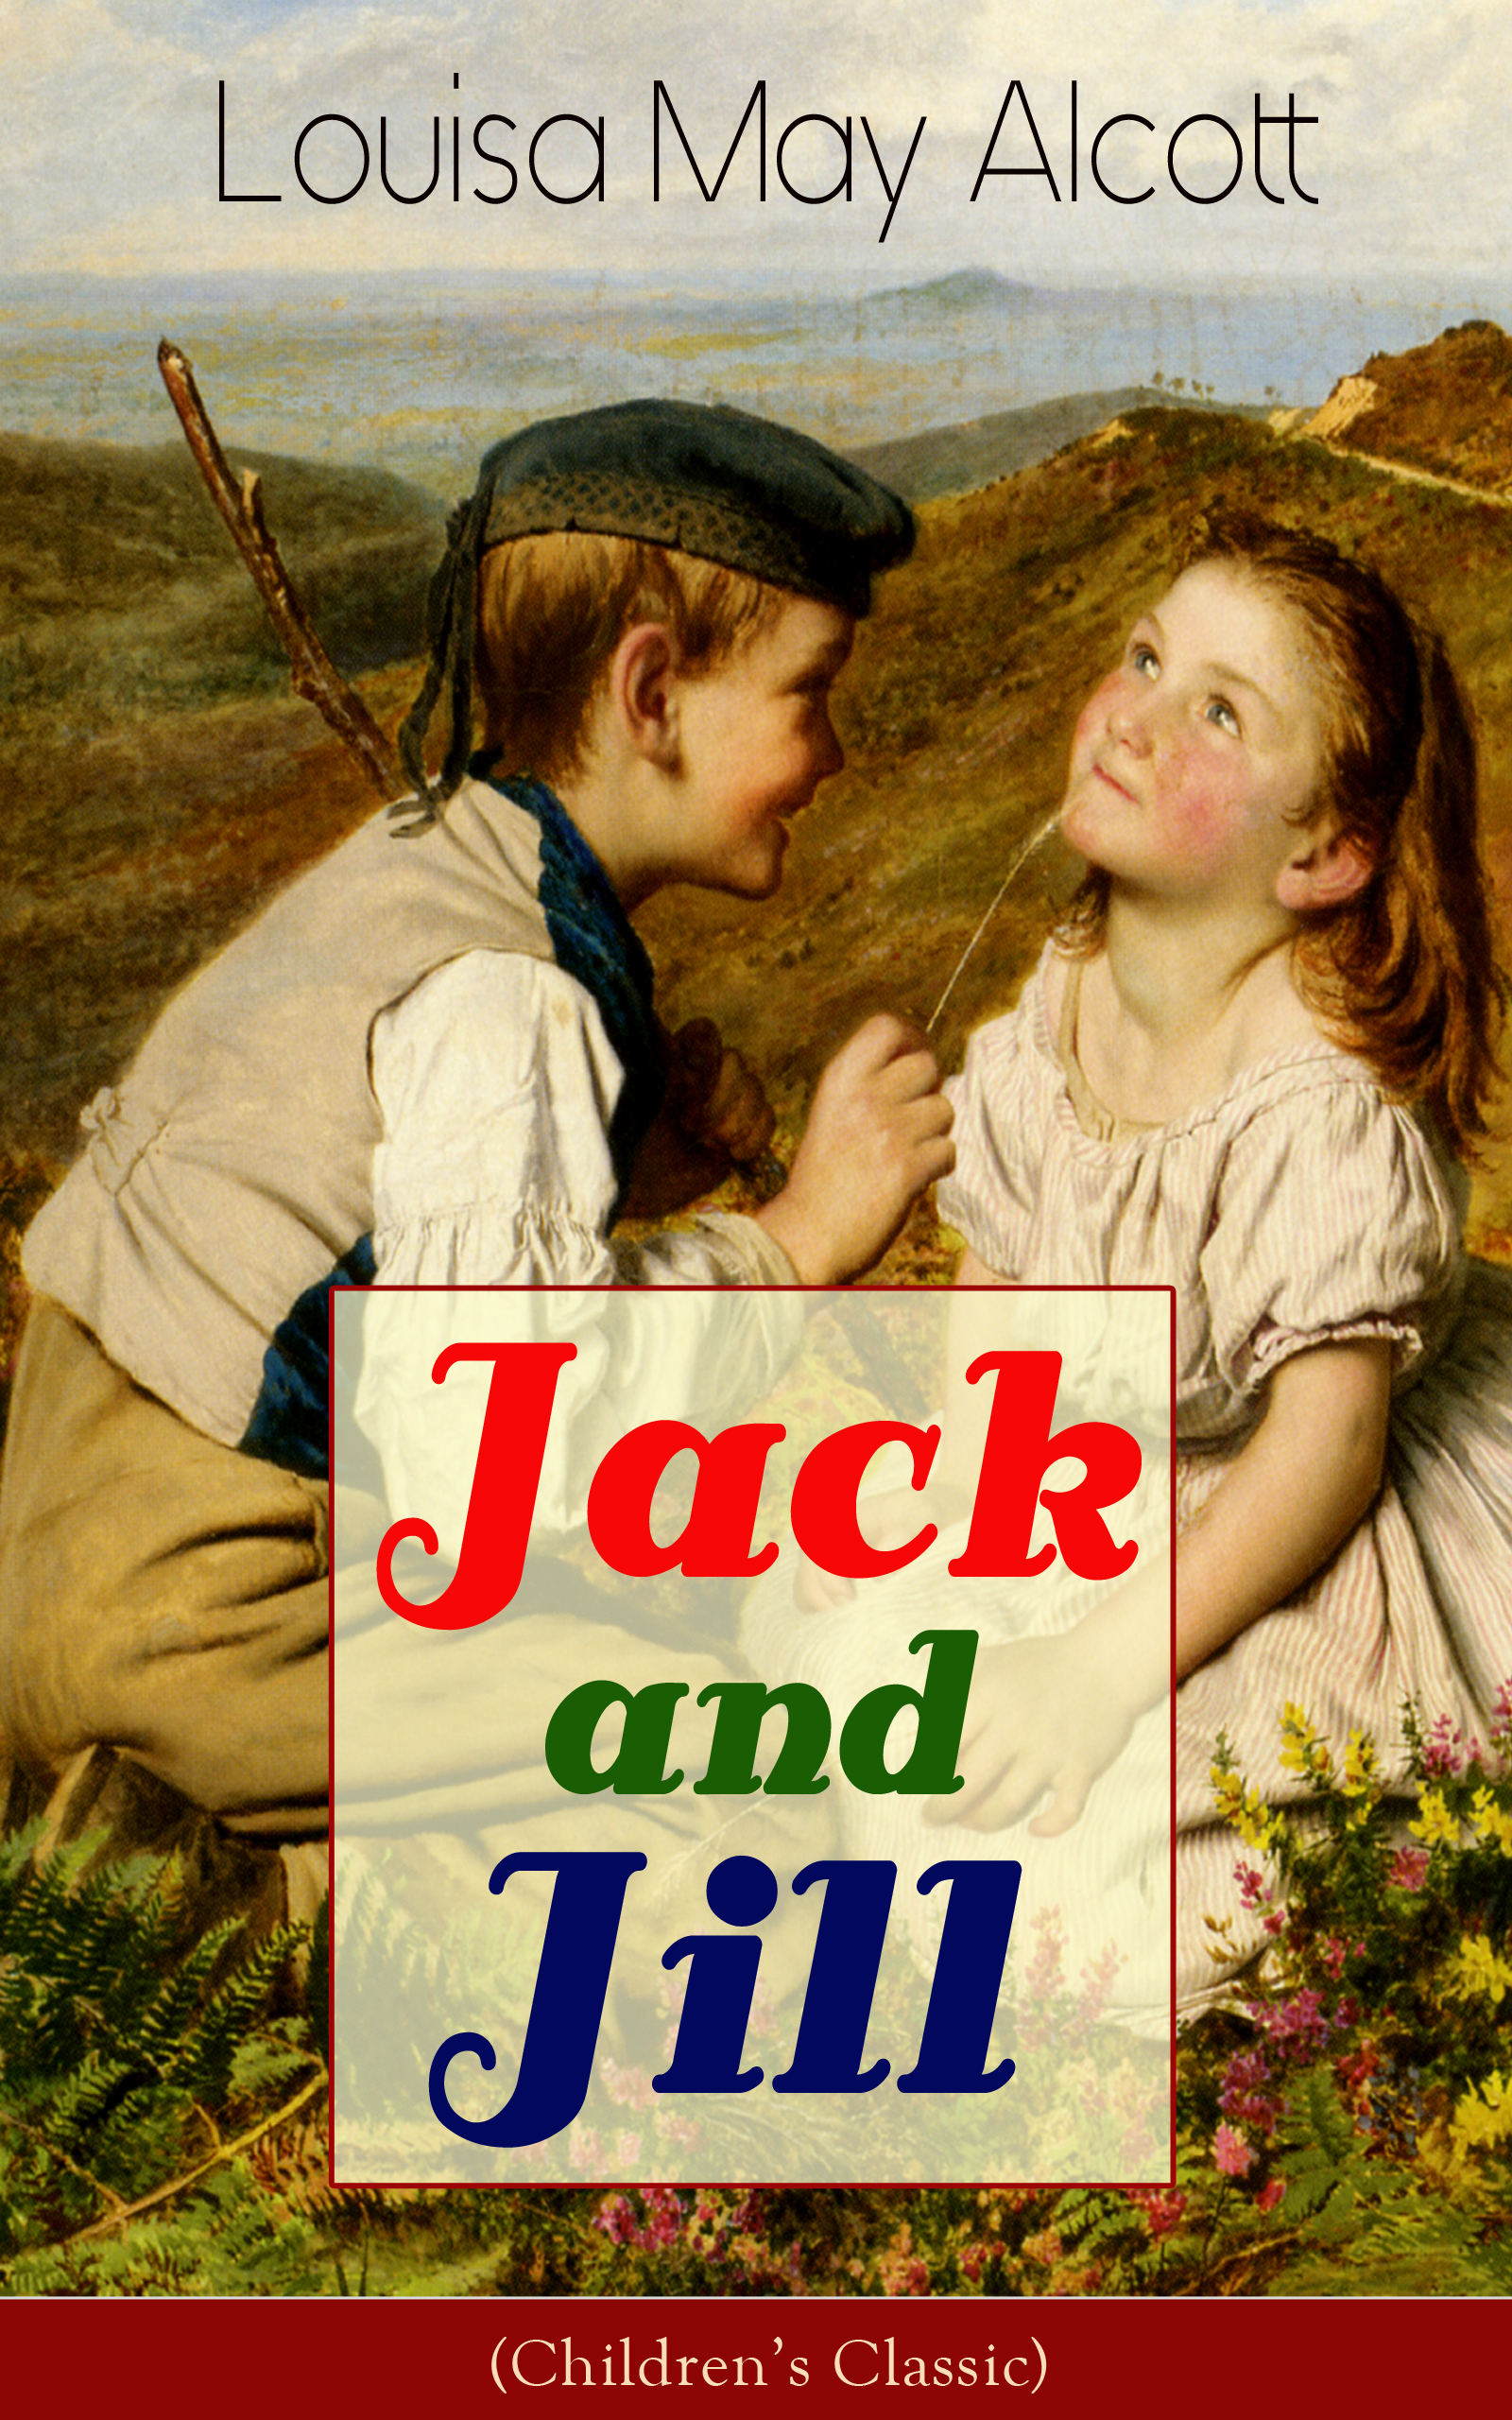 цена на Луиза Мэй Олкотт Jack and Jill (Children's Classic)